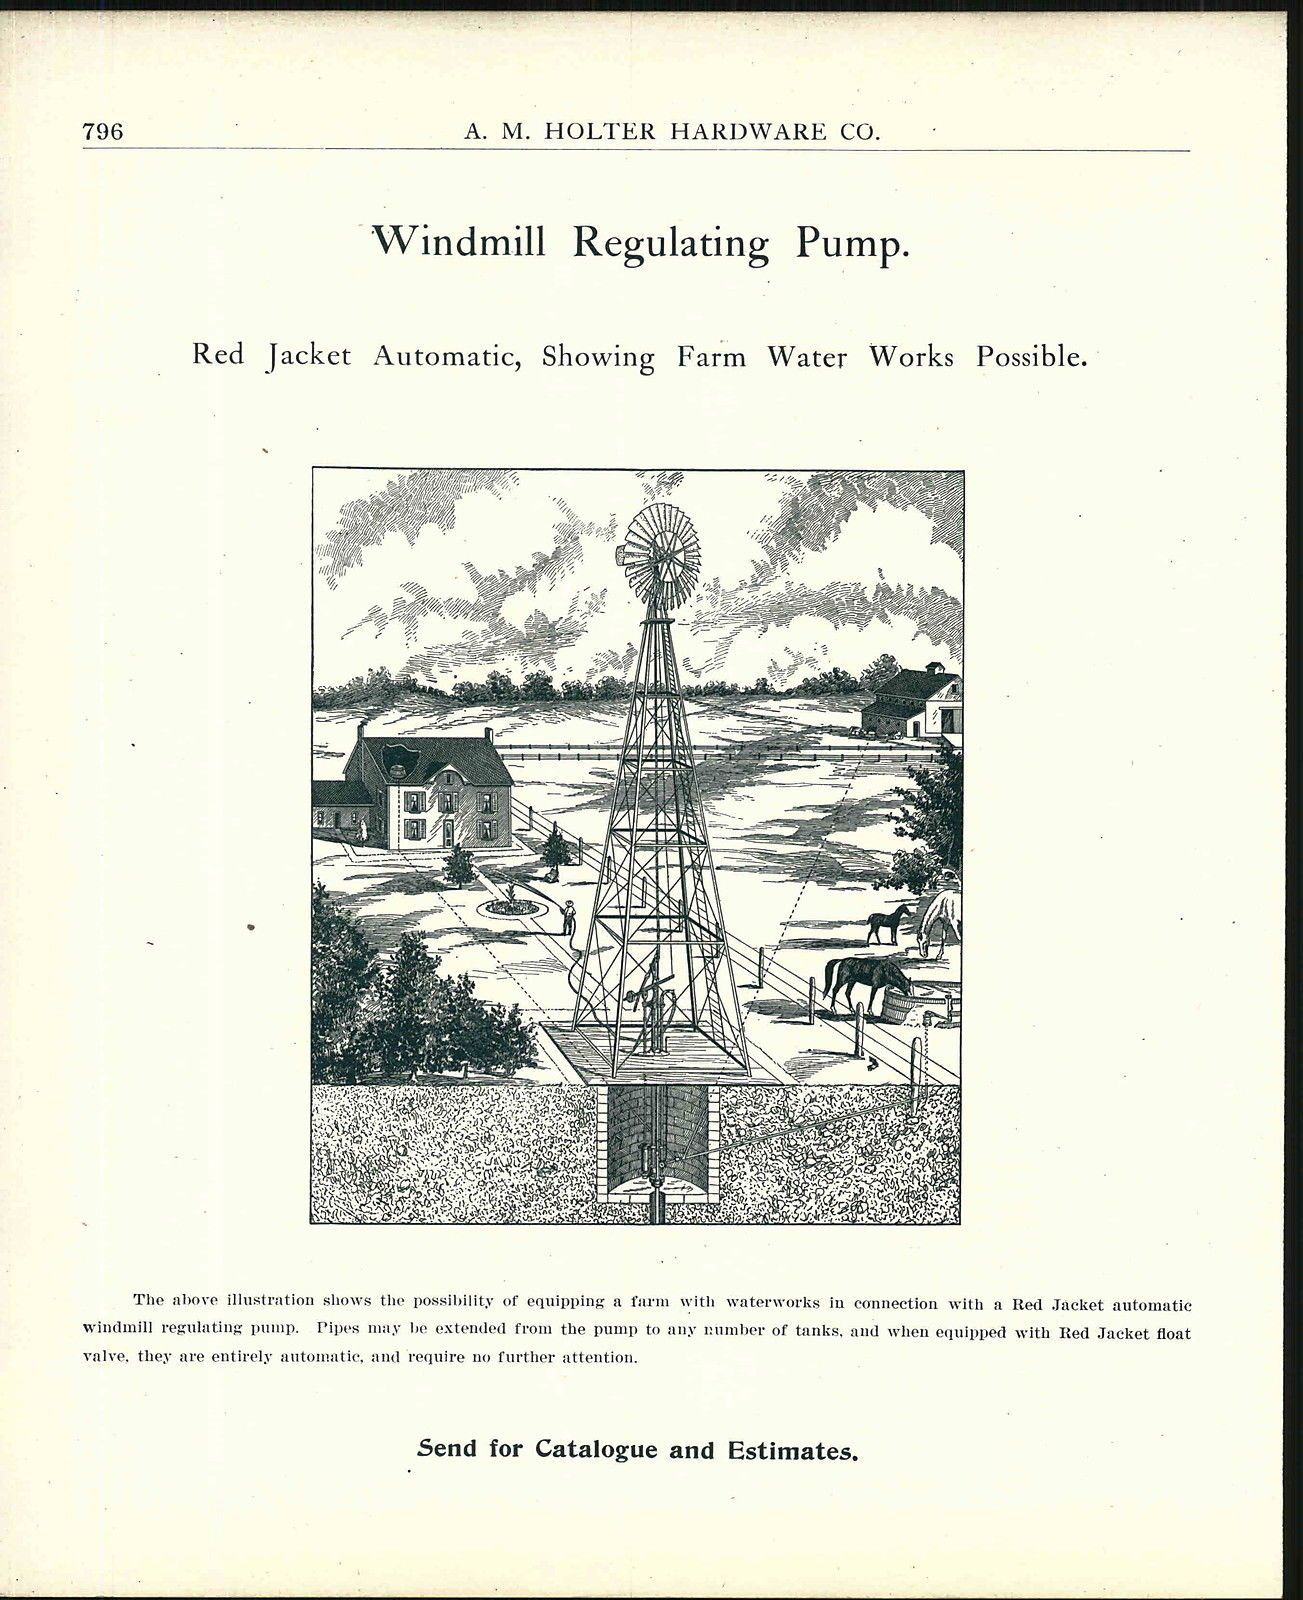 1907 advertisement diagram drawing farm windmill regulating pump 1907 advertisement diagram drawing farm windmill regulating pump horse farmer ebay pooptronica Gallery